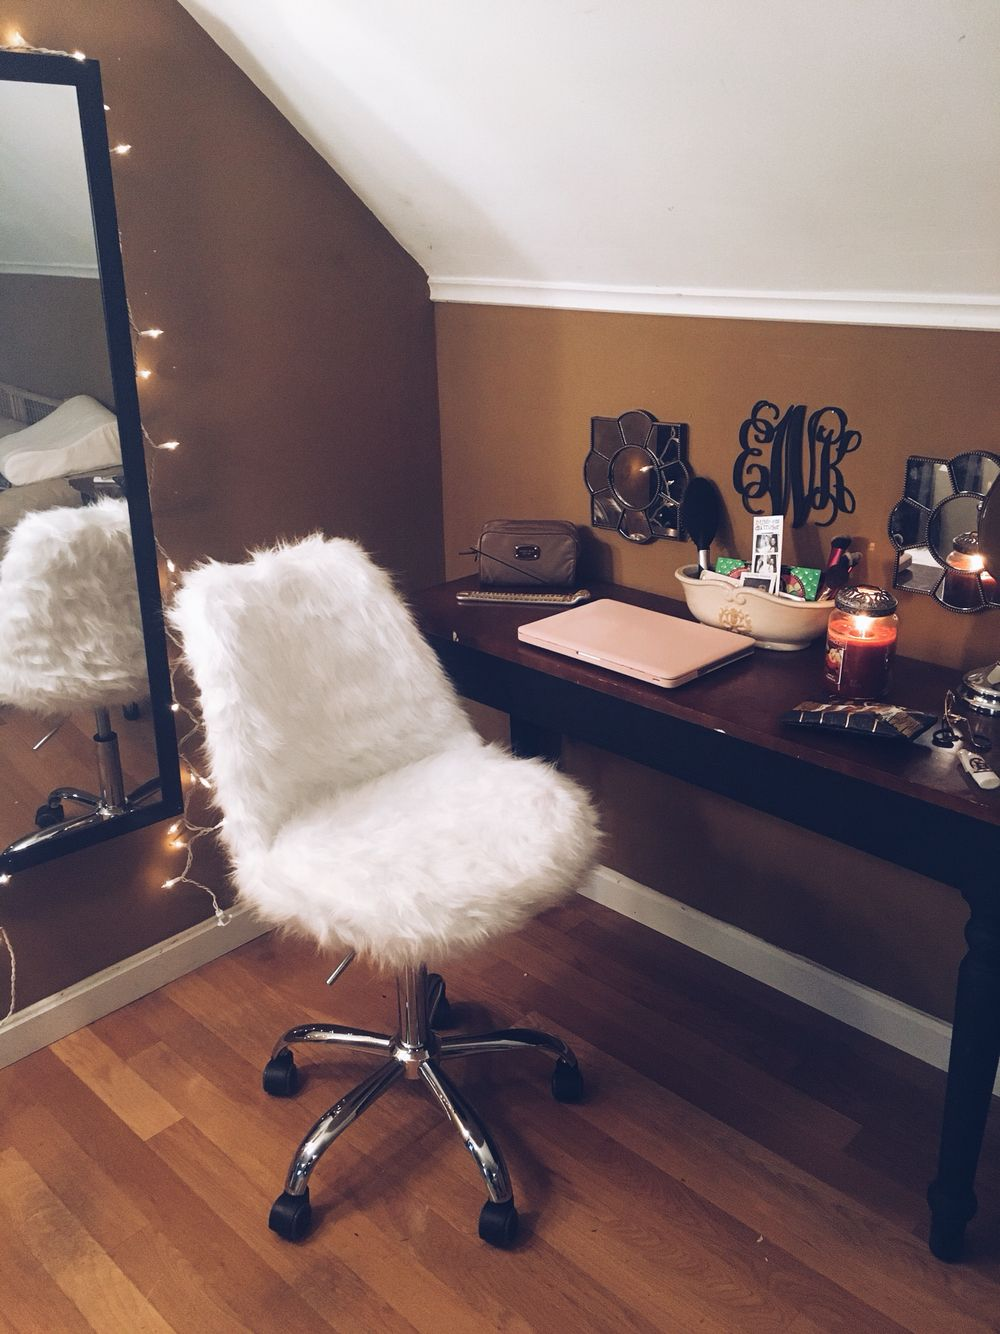 DIY vanity make up desk painted table myself and the mirror opens